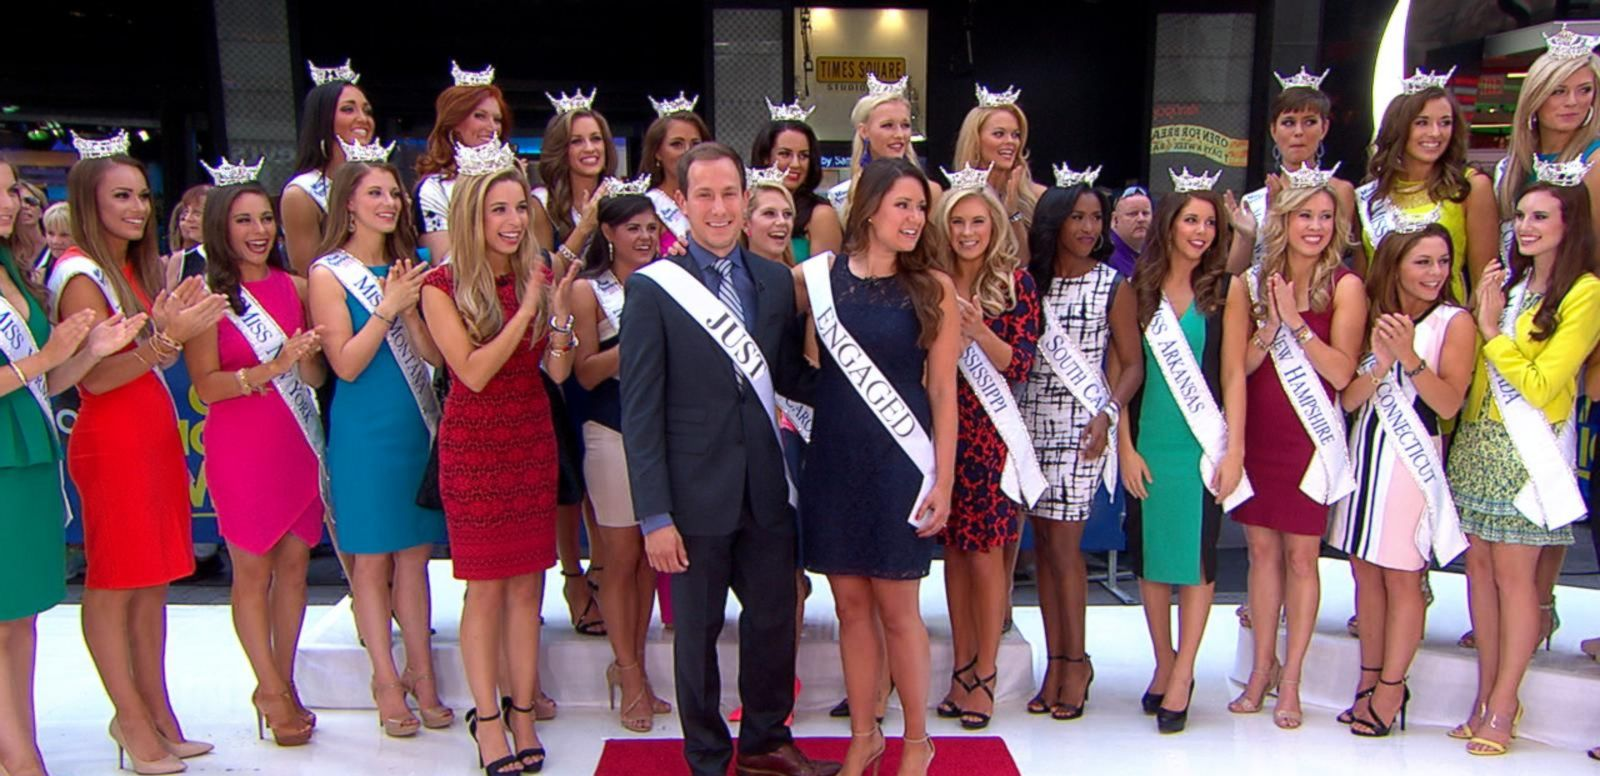 VIDEO: 52 Contestants of Miss America 2015